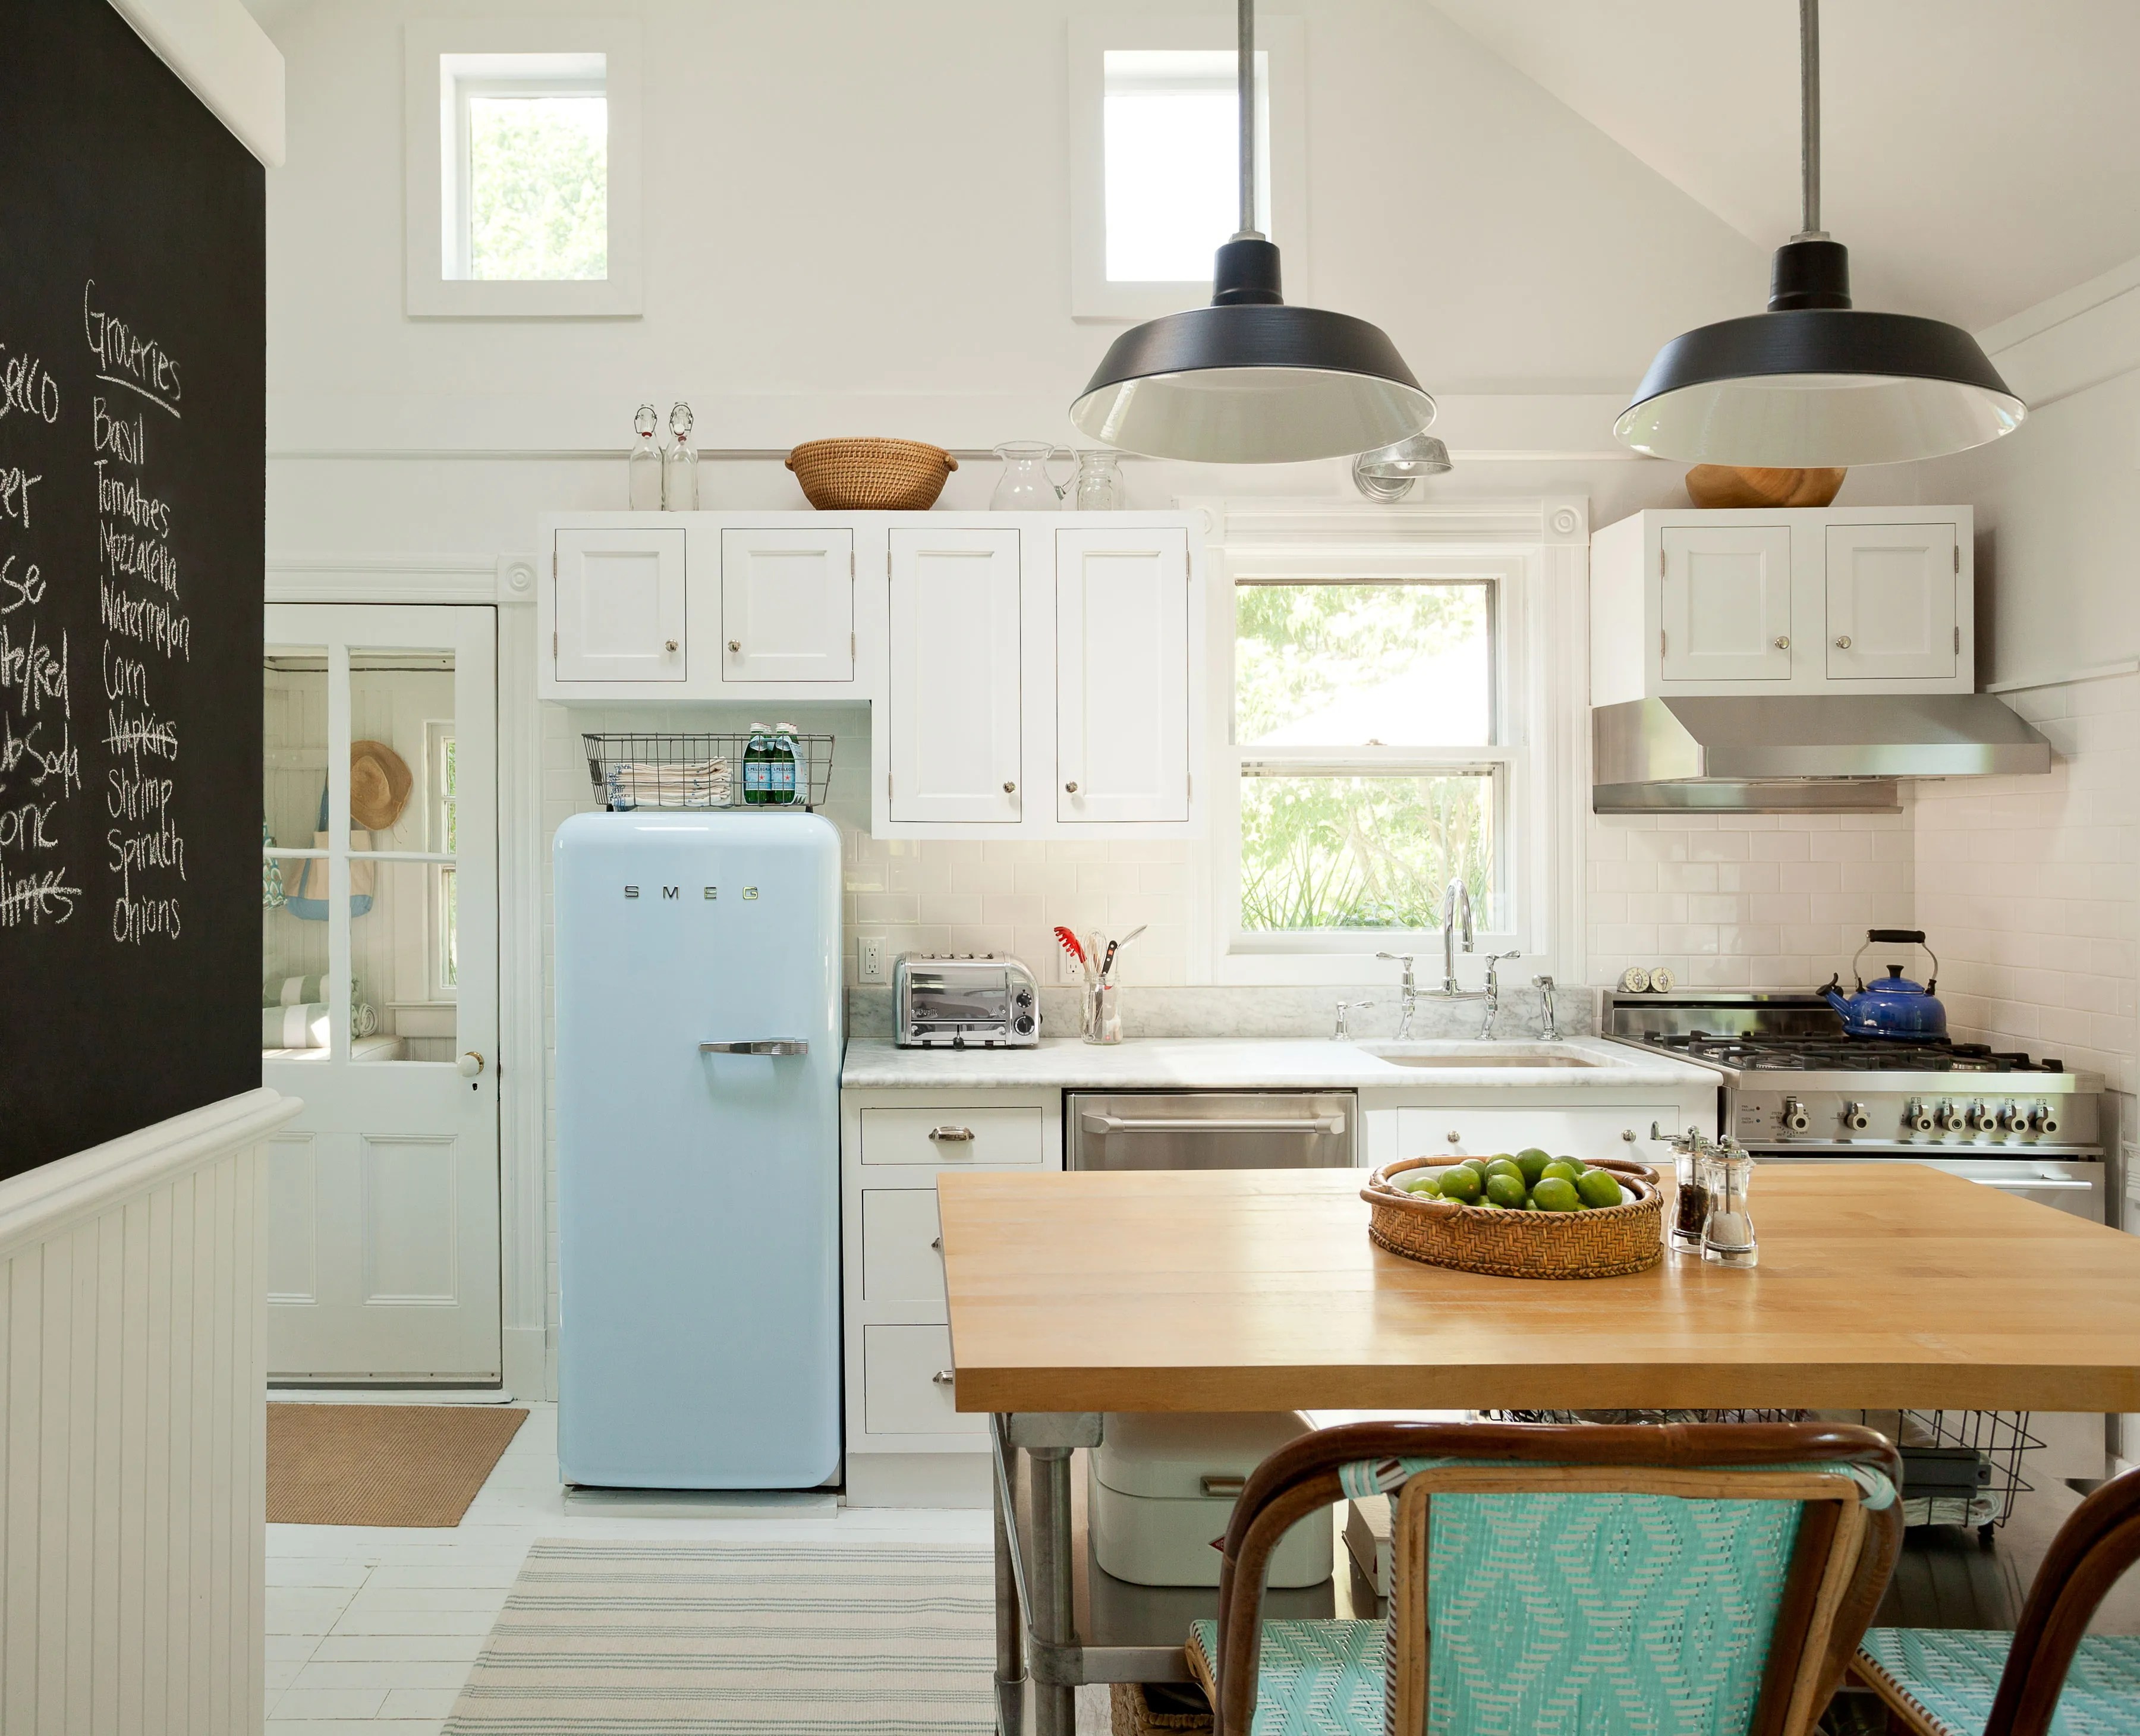 Tiny Kitchen Design Images The Best Small Kitchen Design Ideas For Your Tiny Space